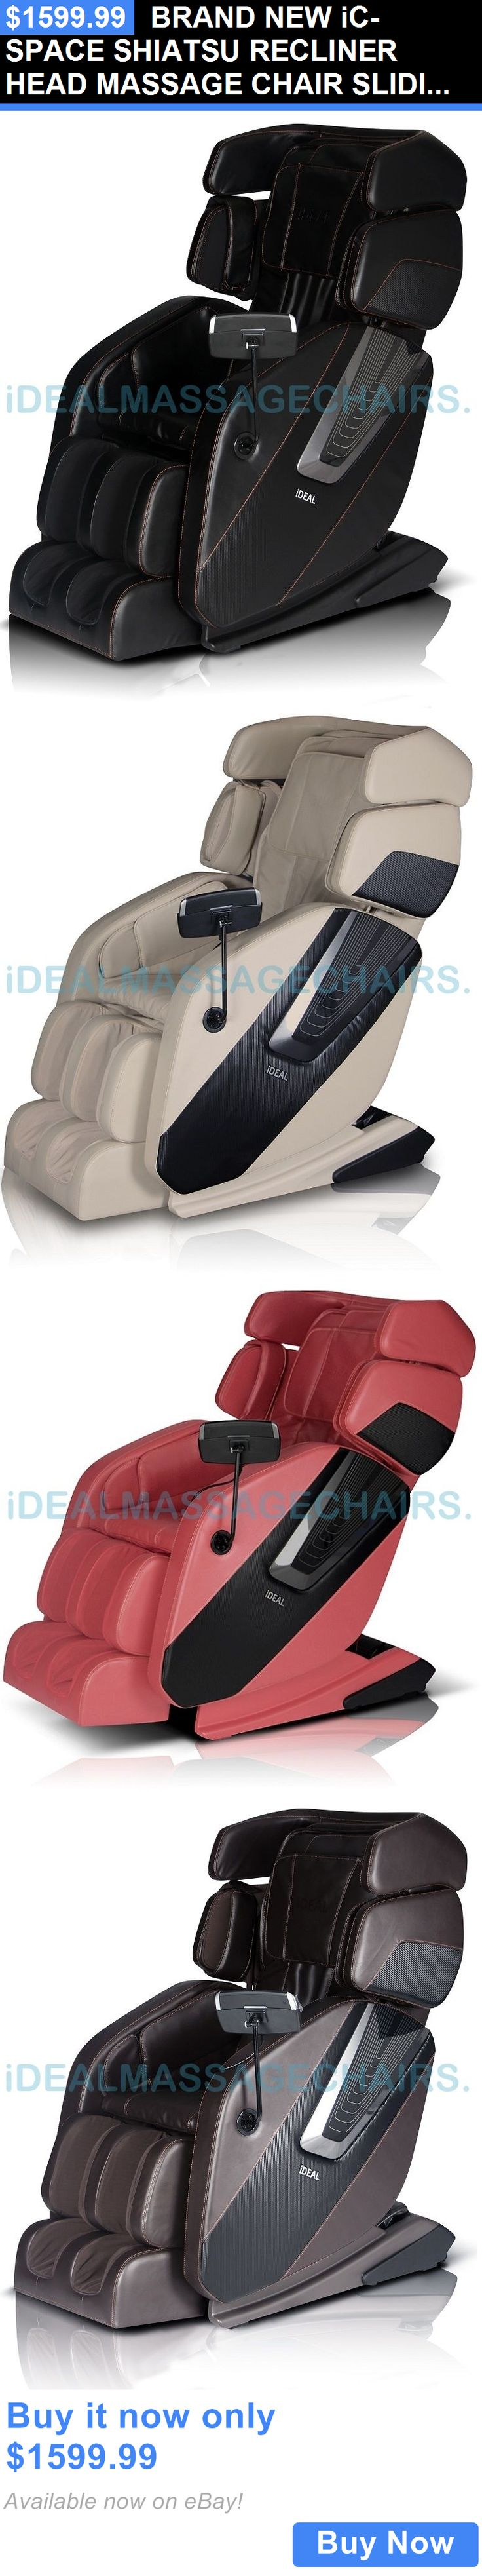 449 best Massage Chair images on Pinterest